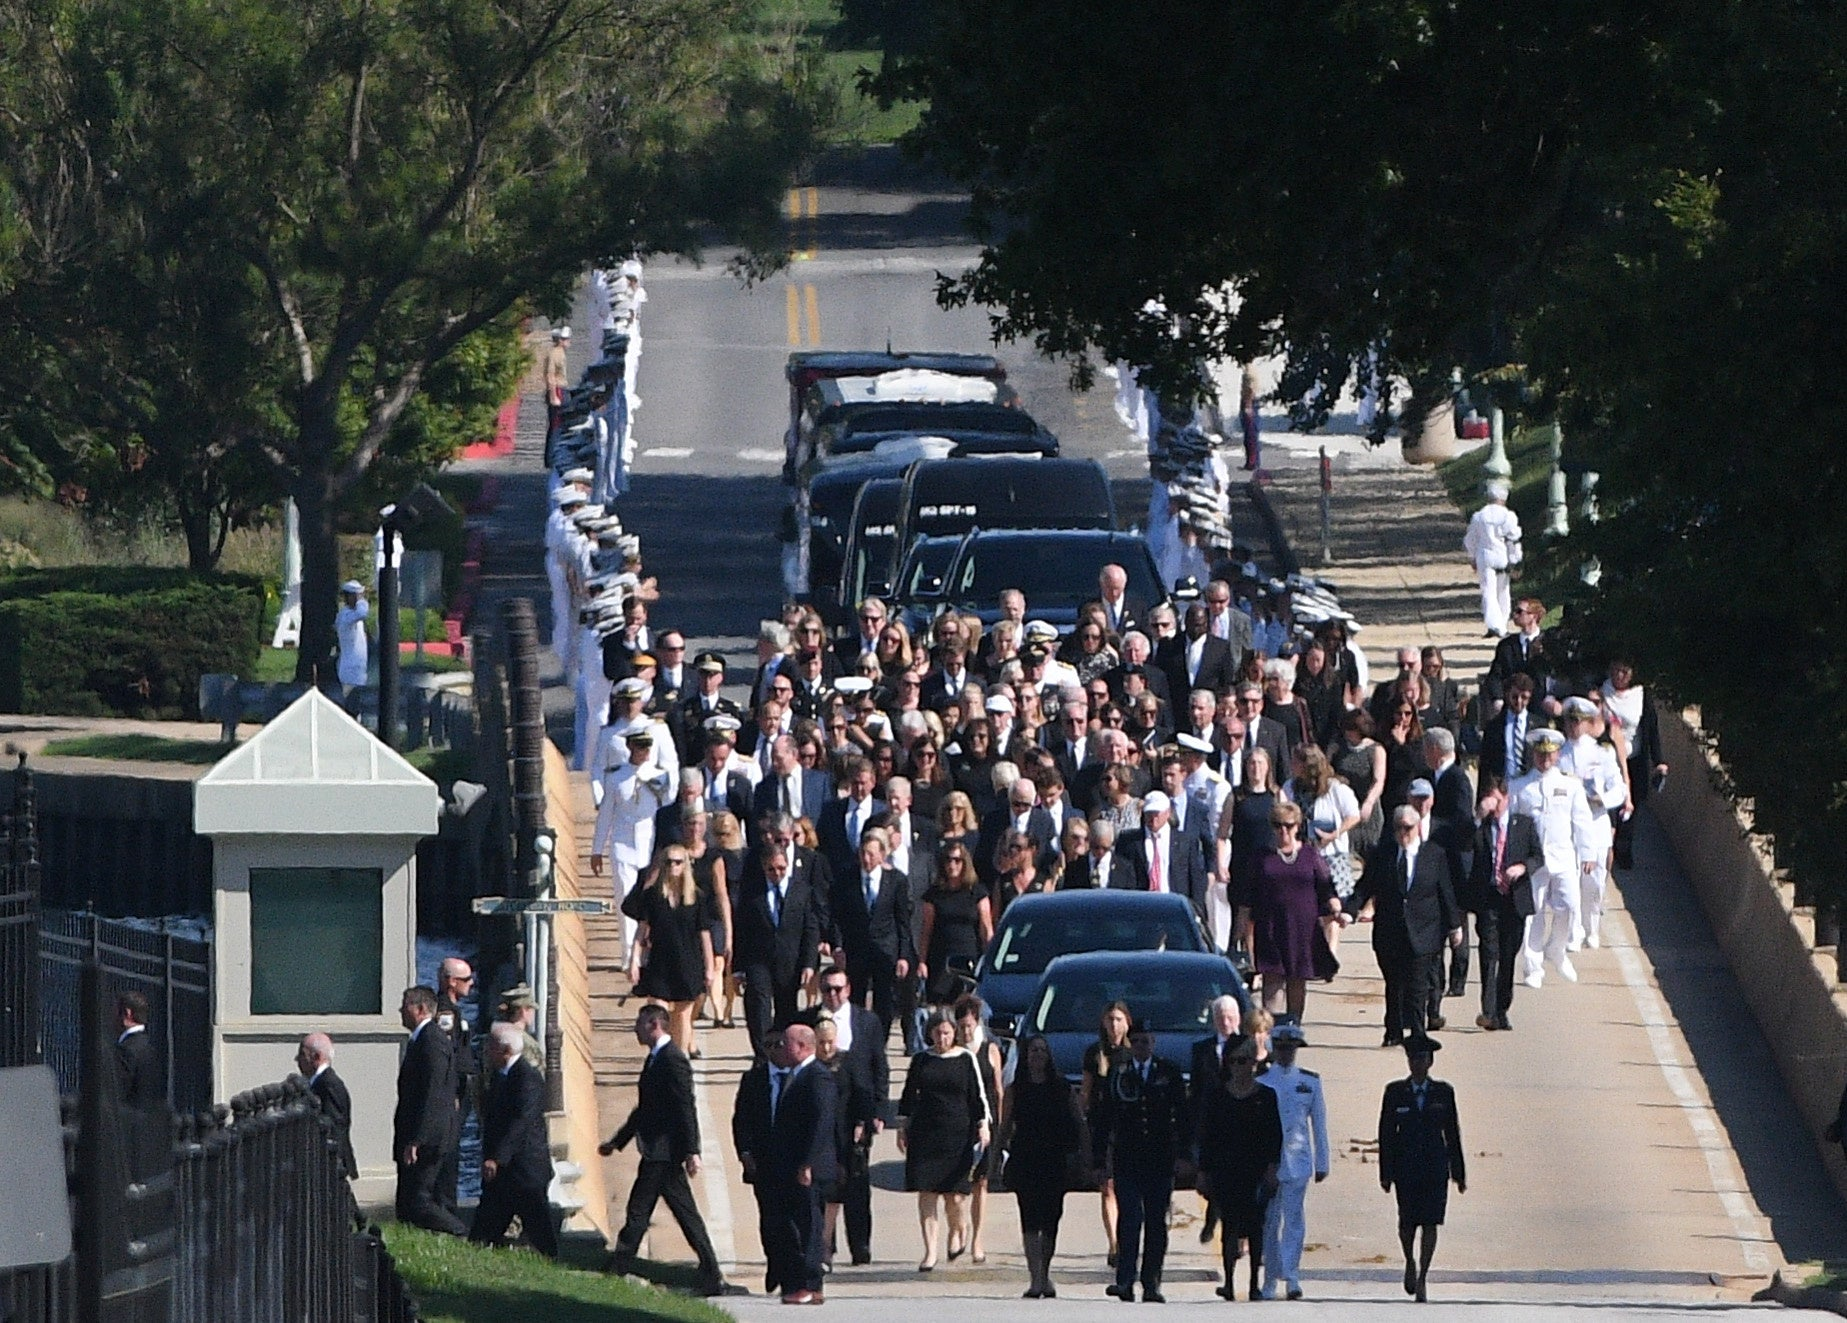 A hearse containing the body of the late Senator John McCain arrives for a private memorial service and burial at the U.S. Naval Academy in Annapolis on September 2, 2018.